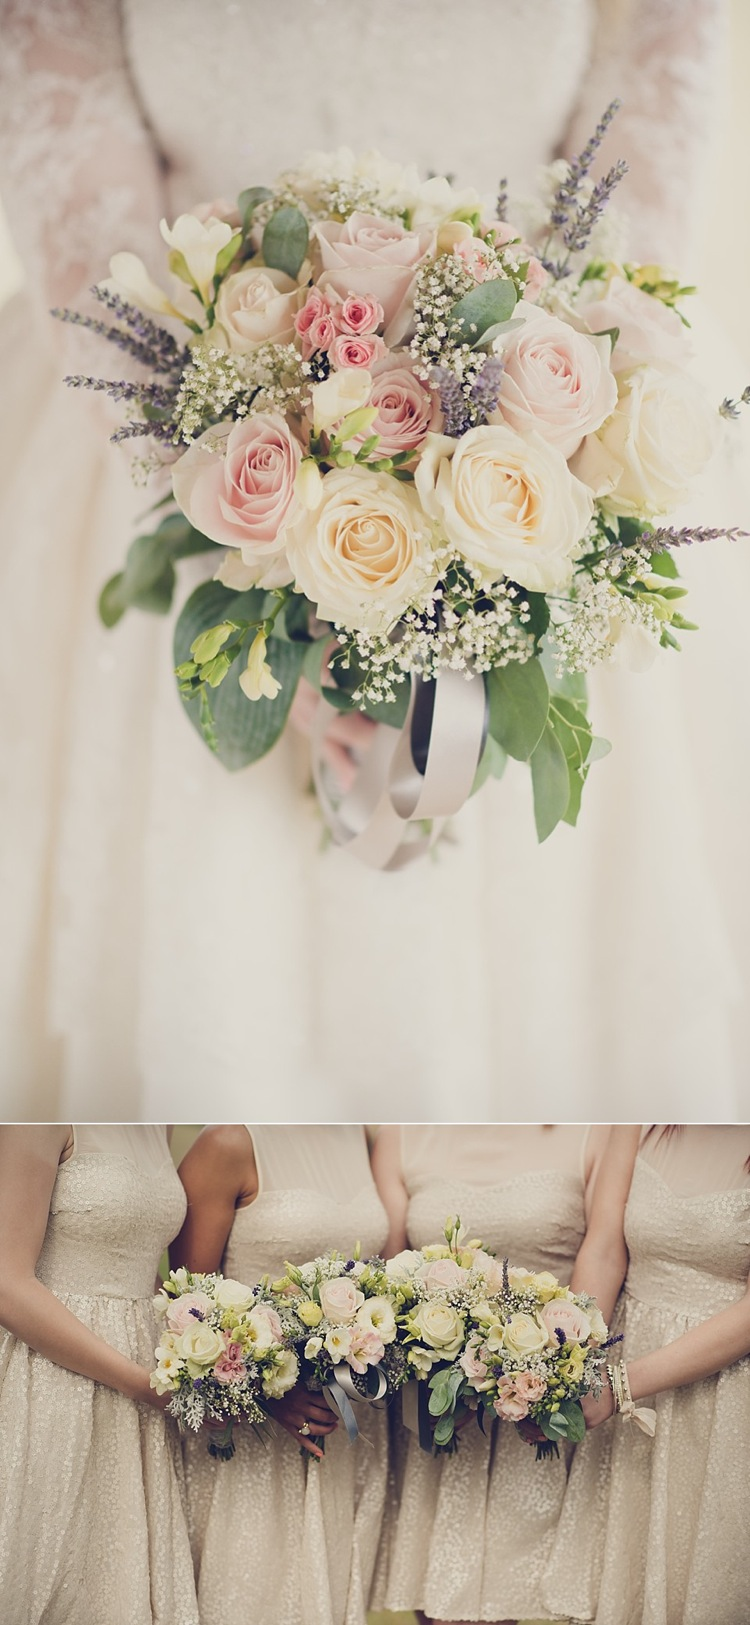 creative ideas chic wedding bouquets flowers classic contemporary london lily sawyer photo